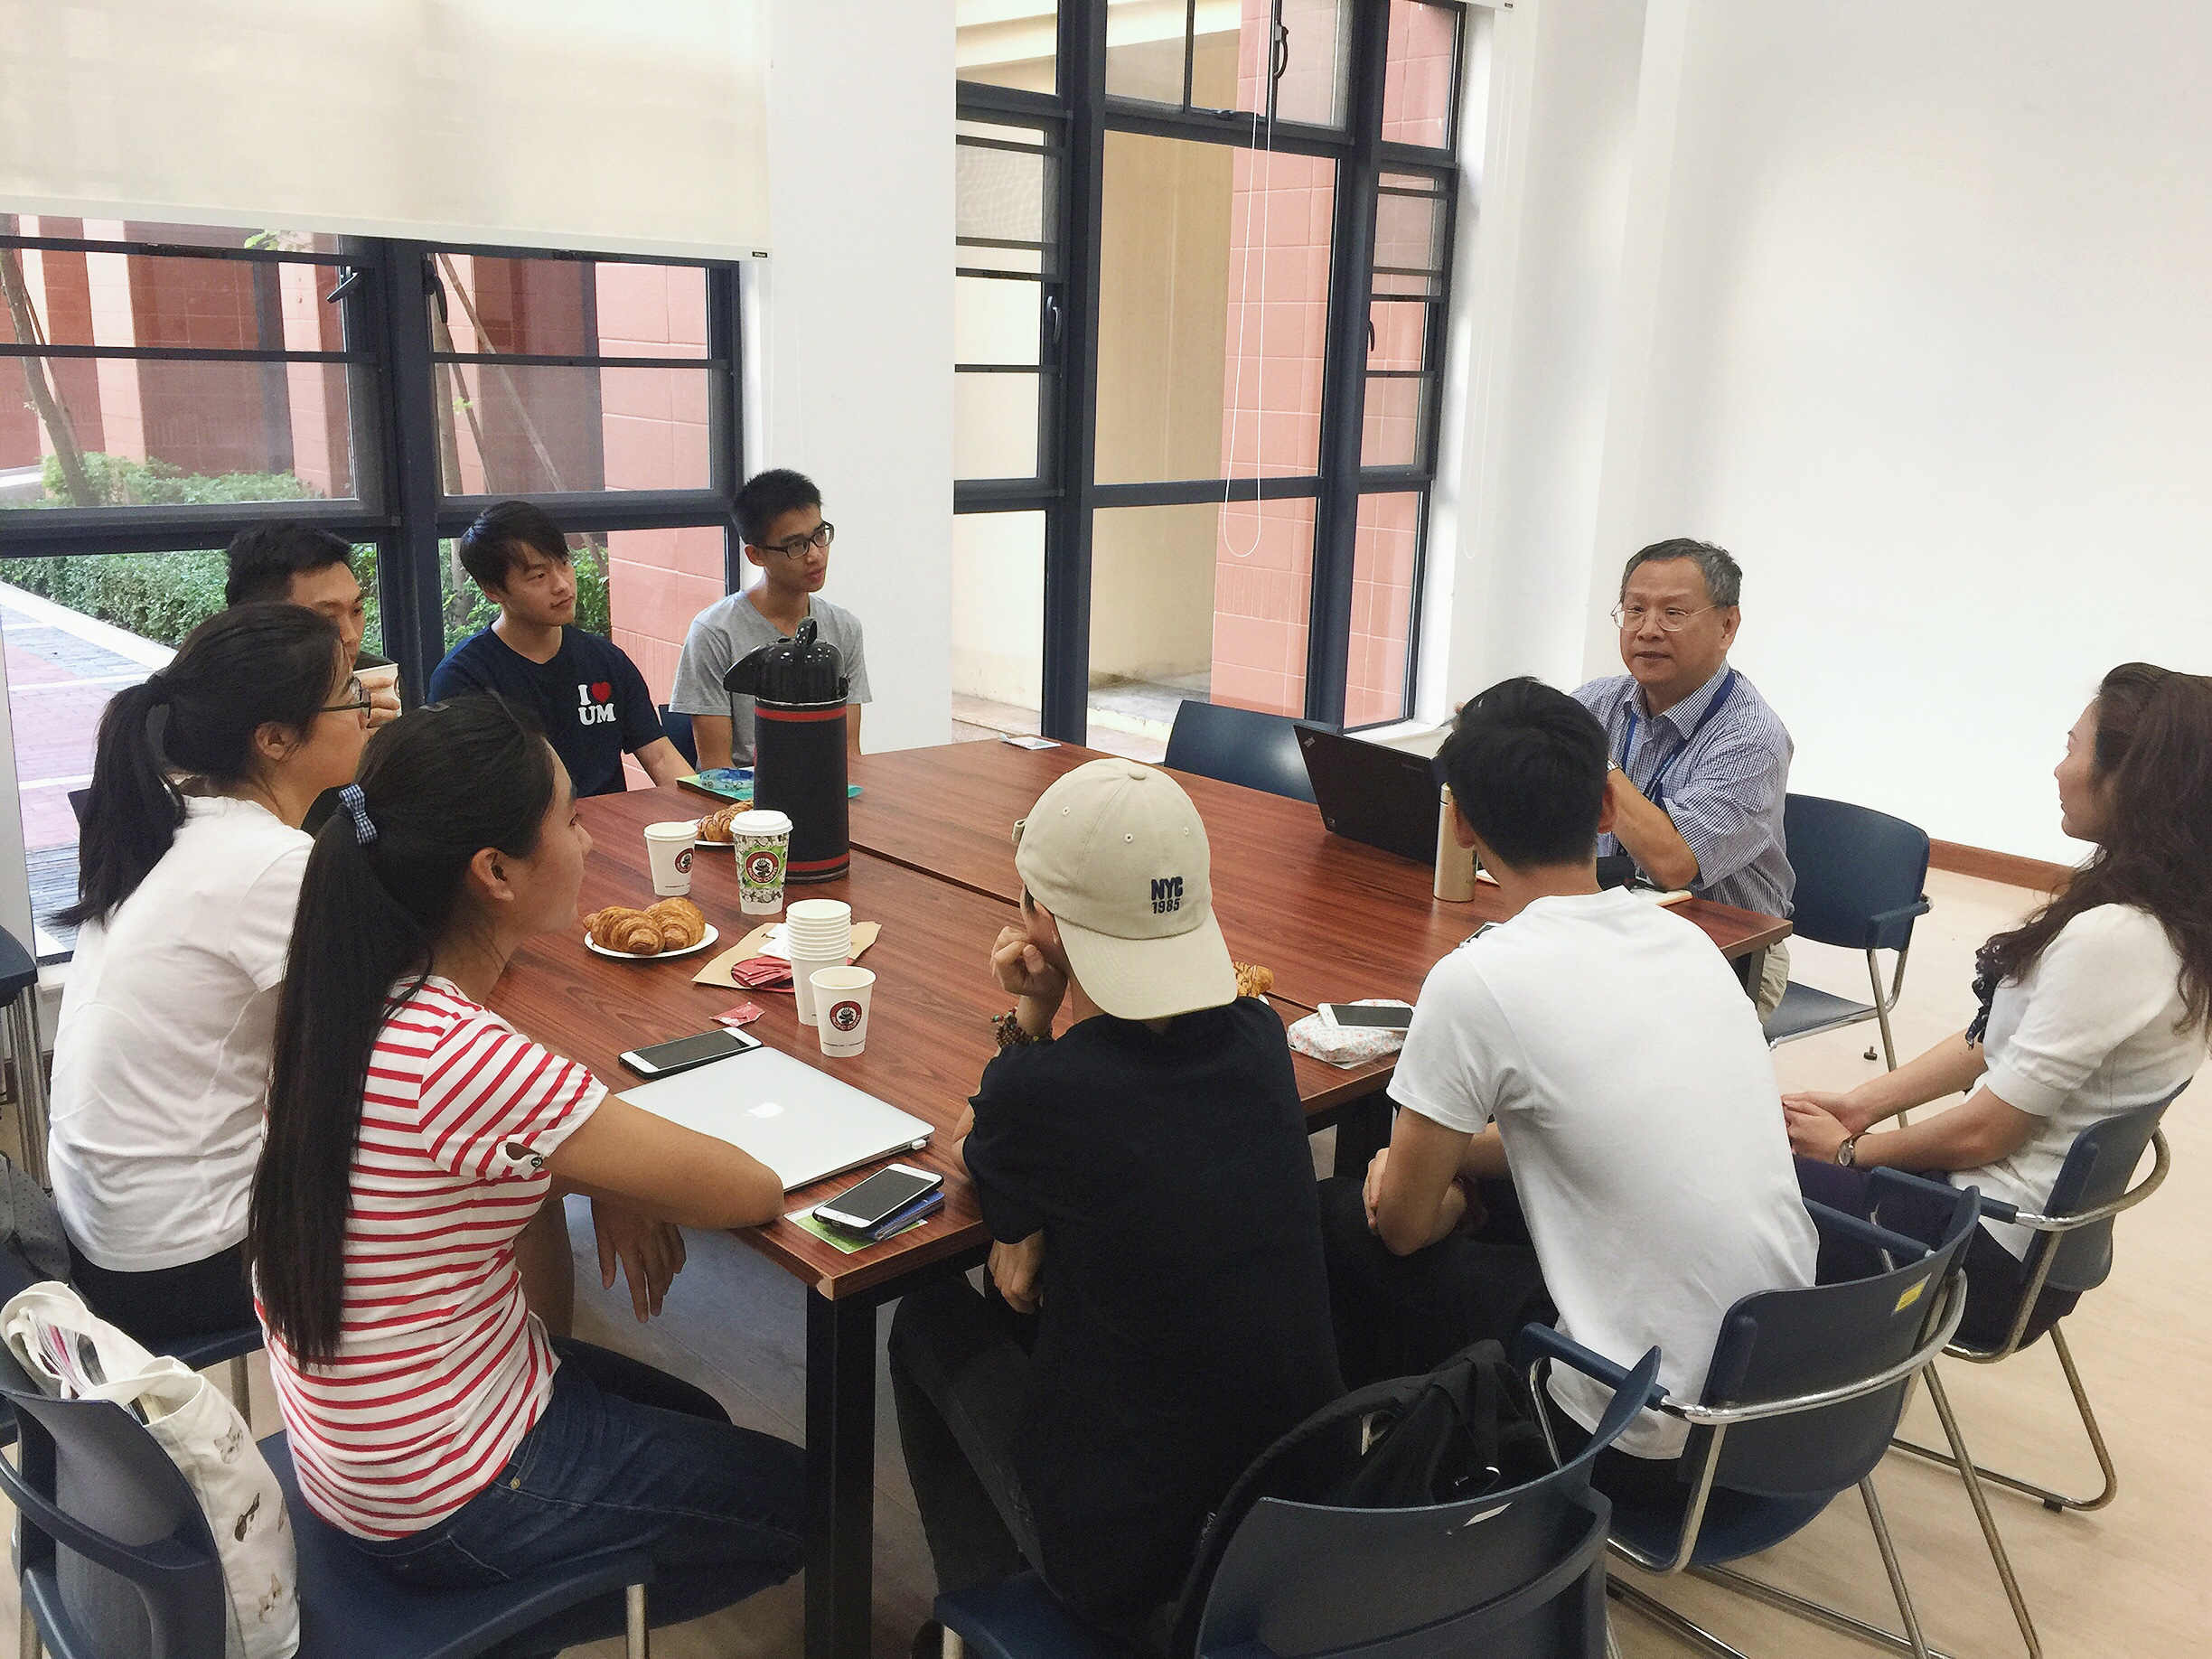 Prof Jerome Yen often holds meetings with students to discuss their entrepreneurial plans